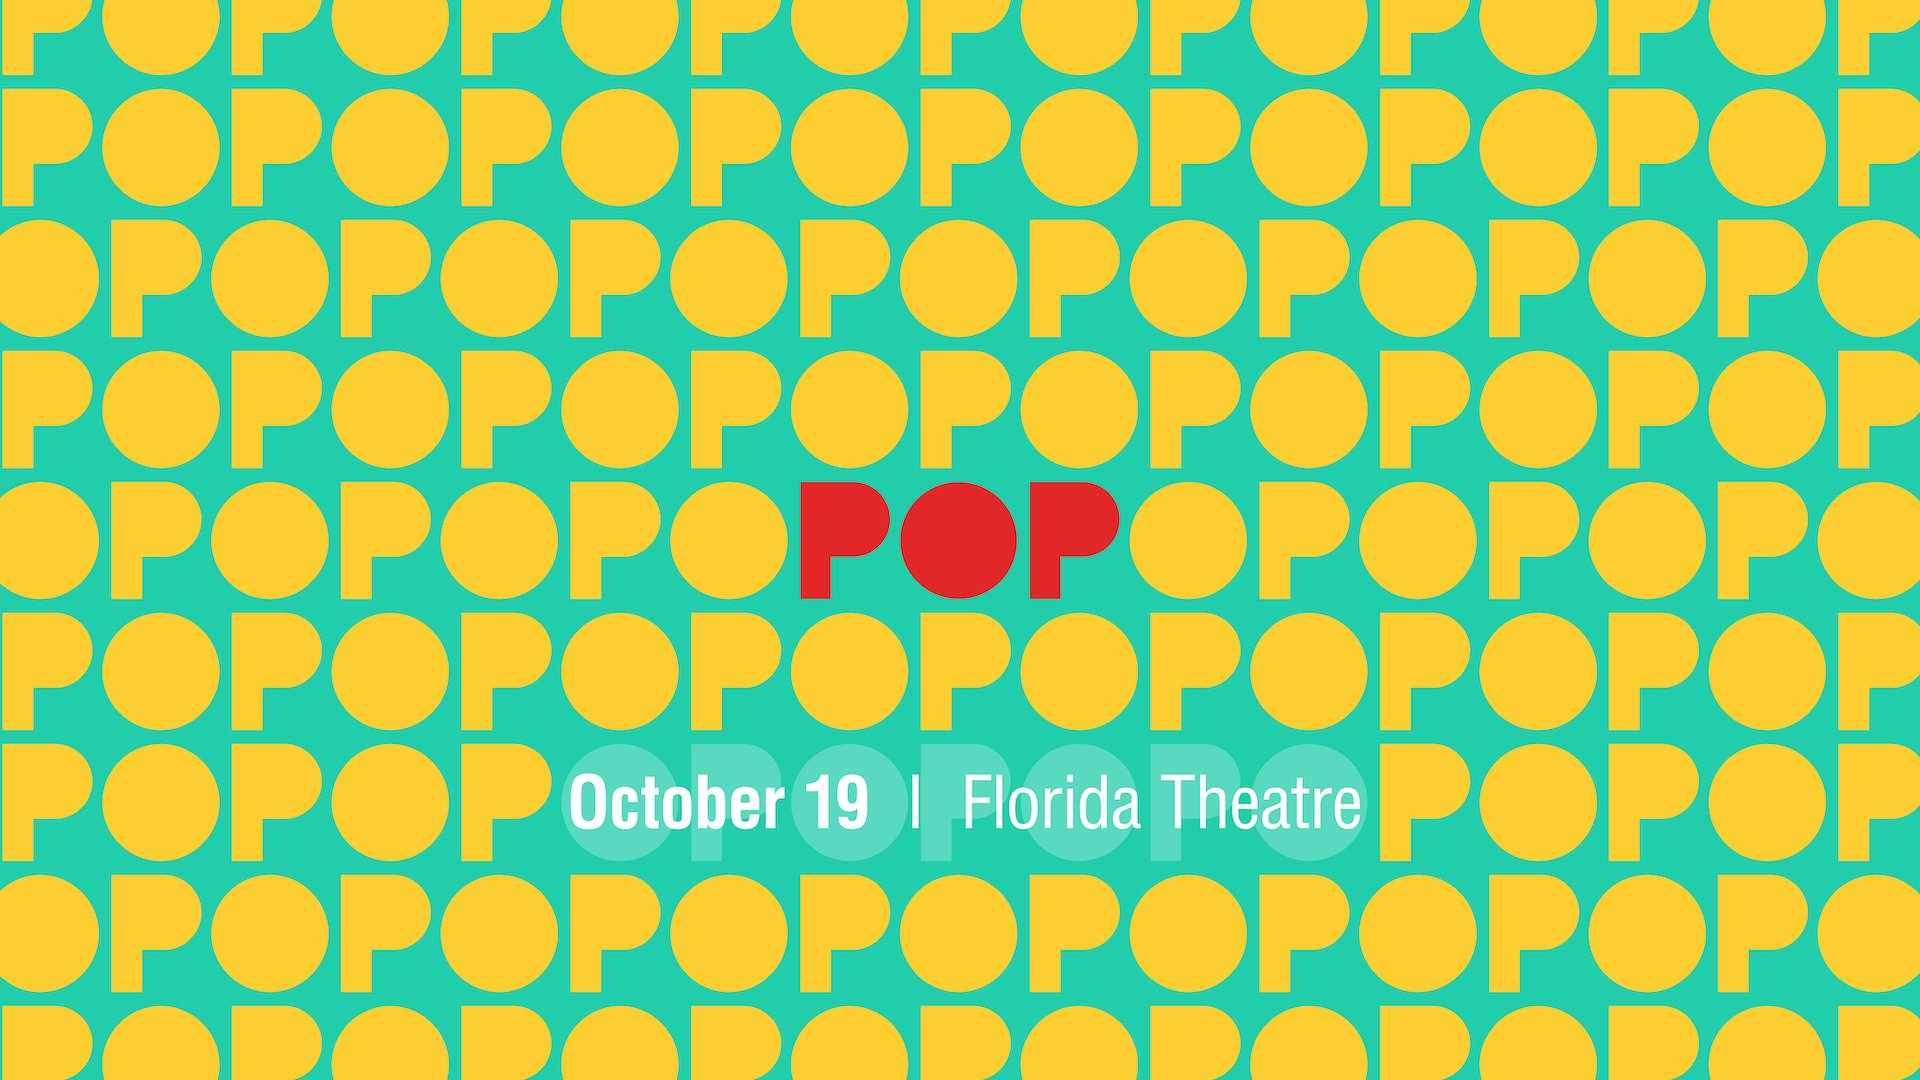 Pop conference theme graphic